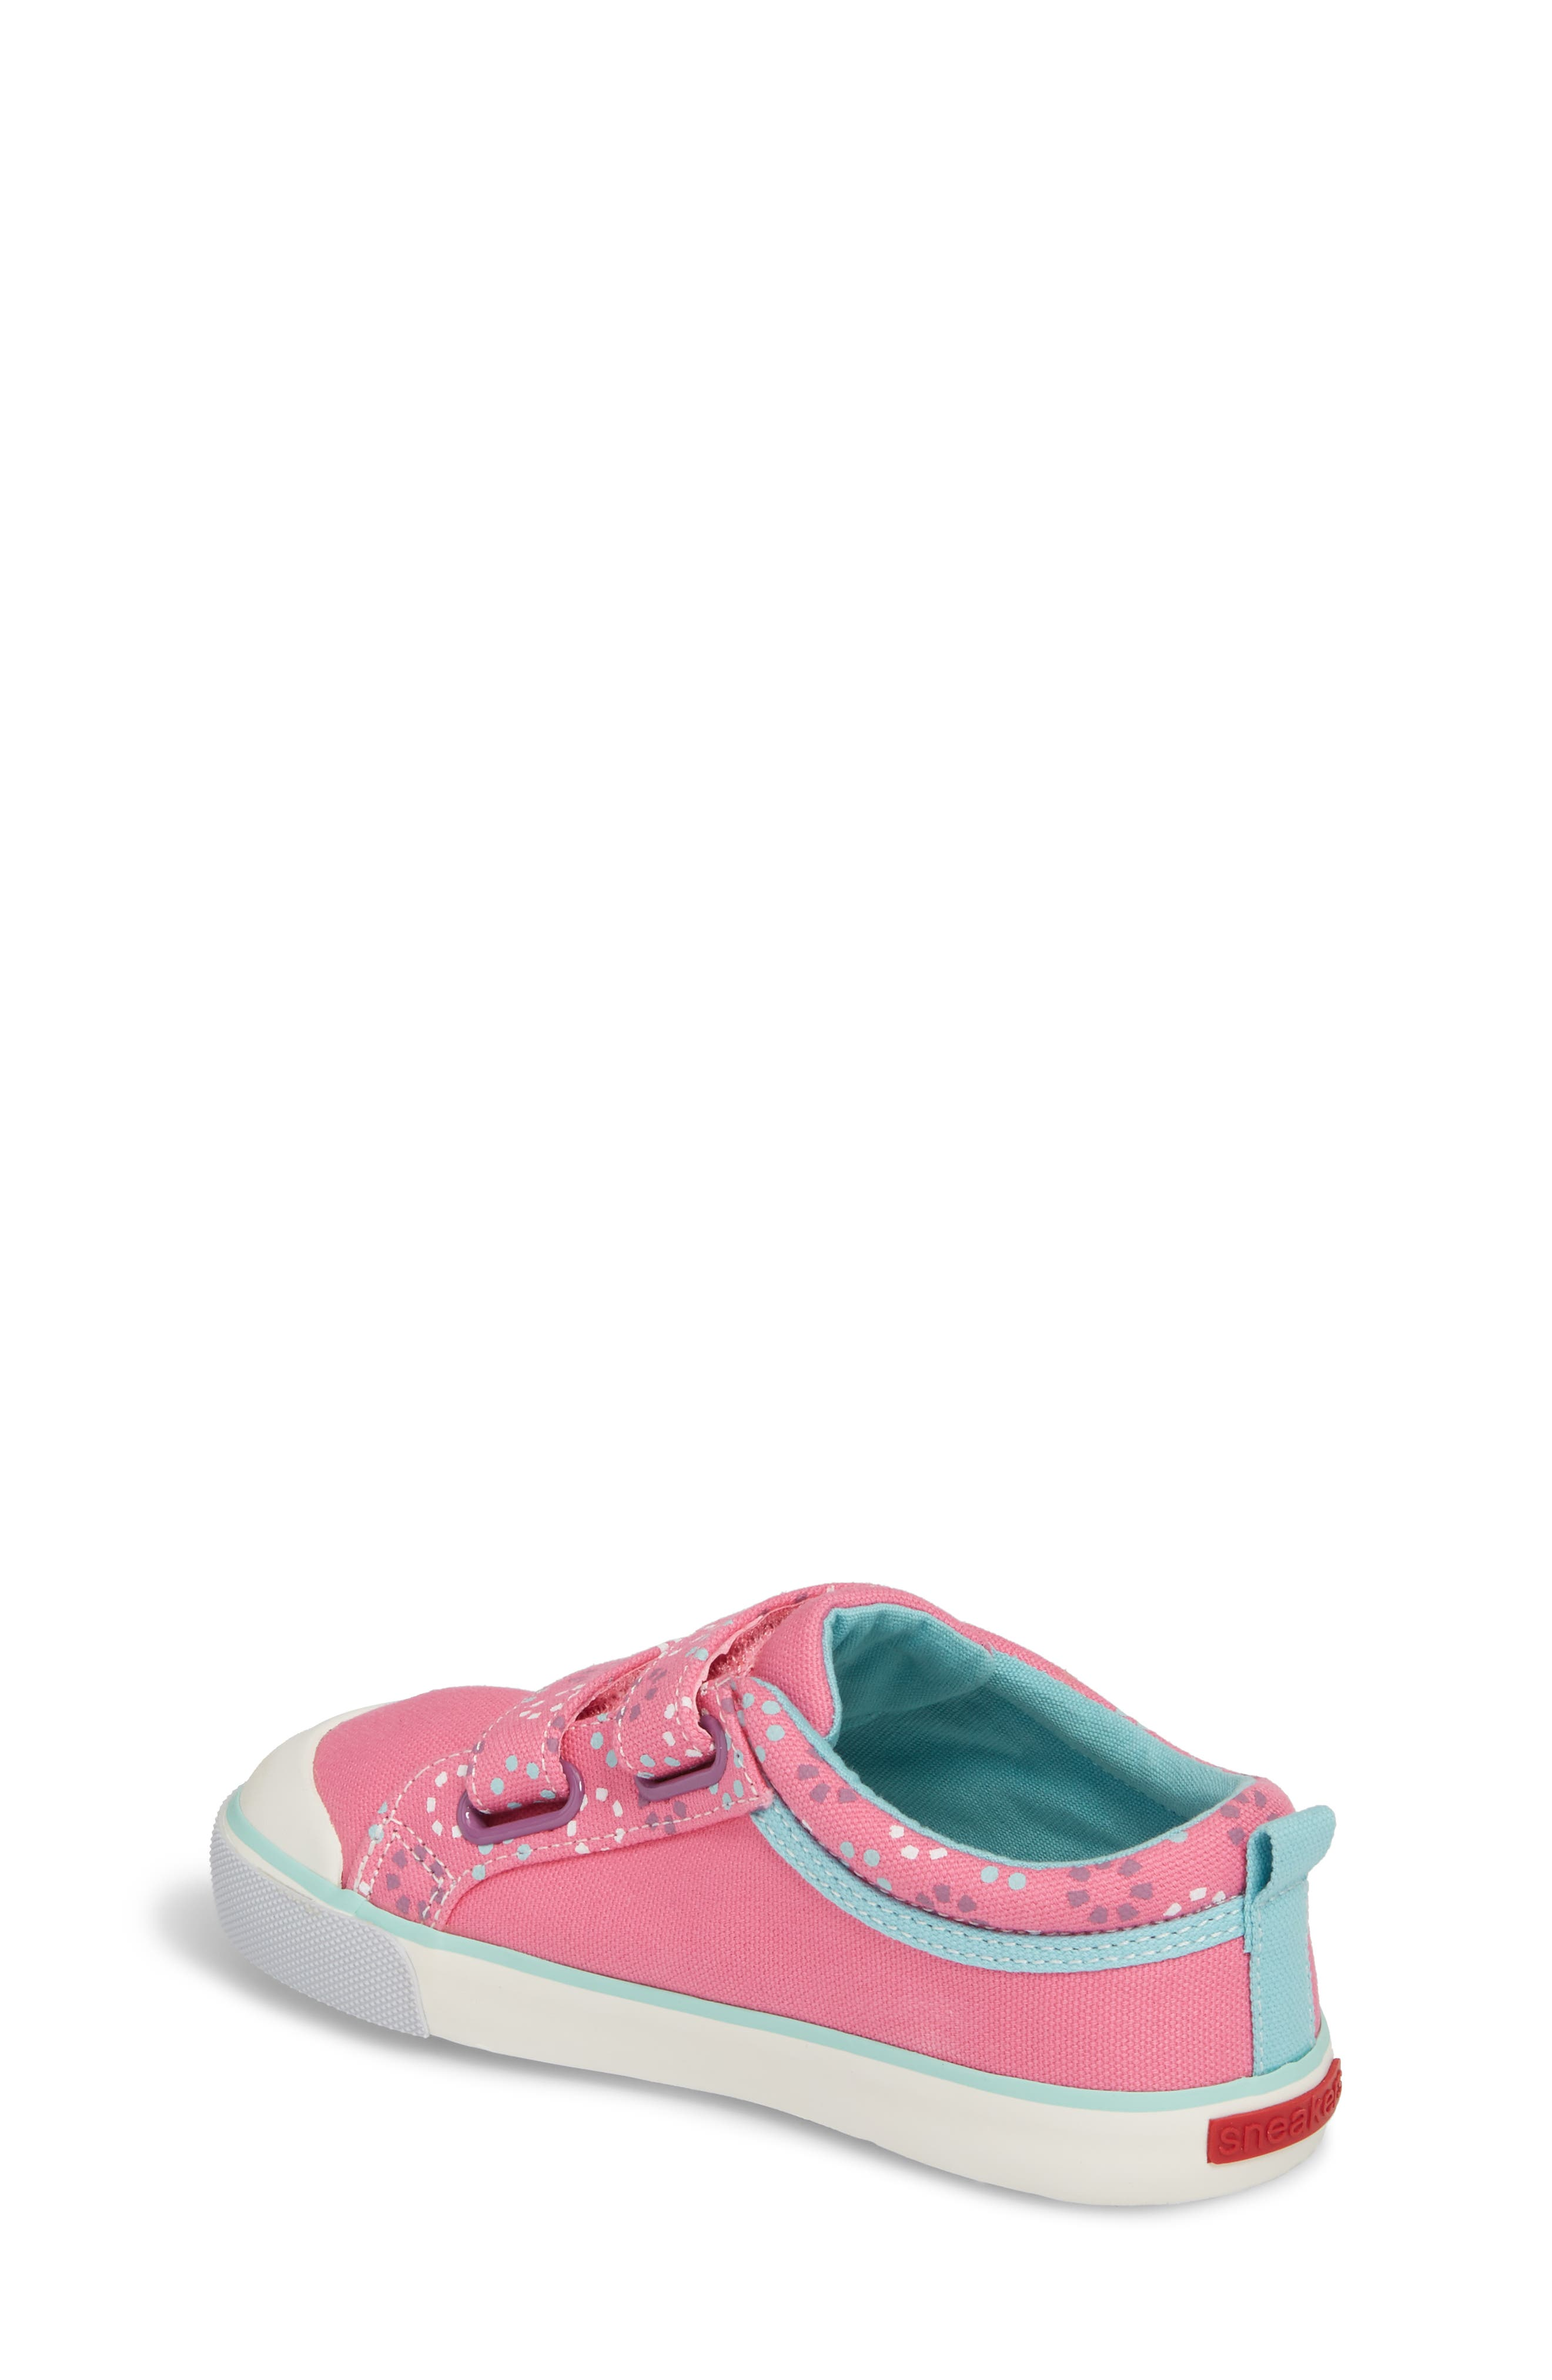 Baby Walker & Toddler Shoes